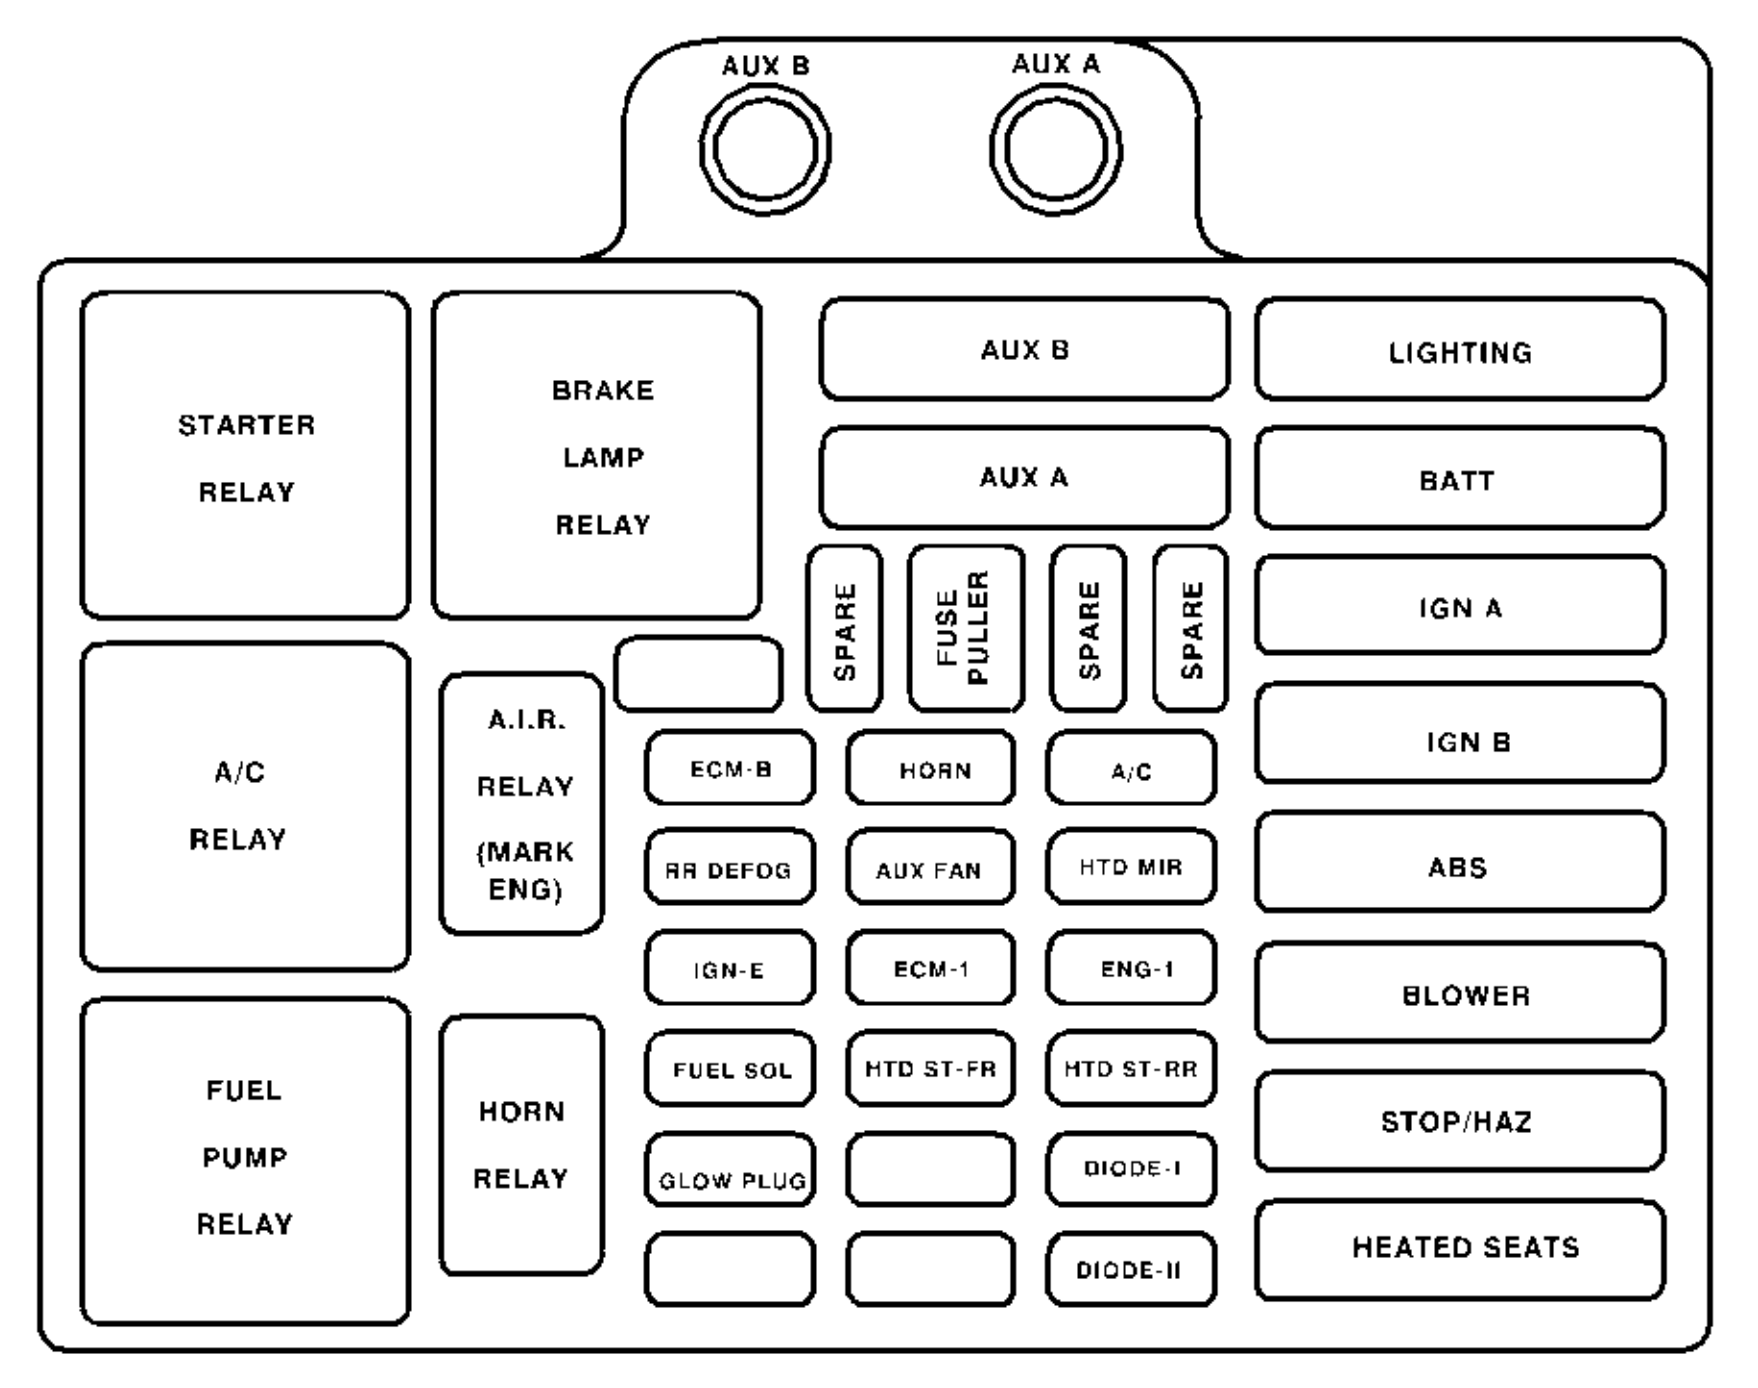 1995 chevy silverado fuse box diagram